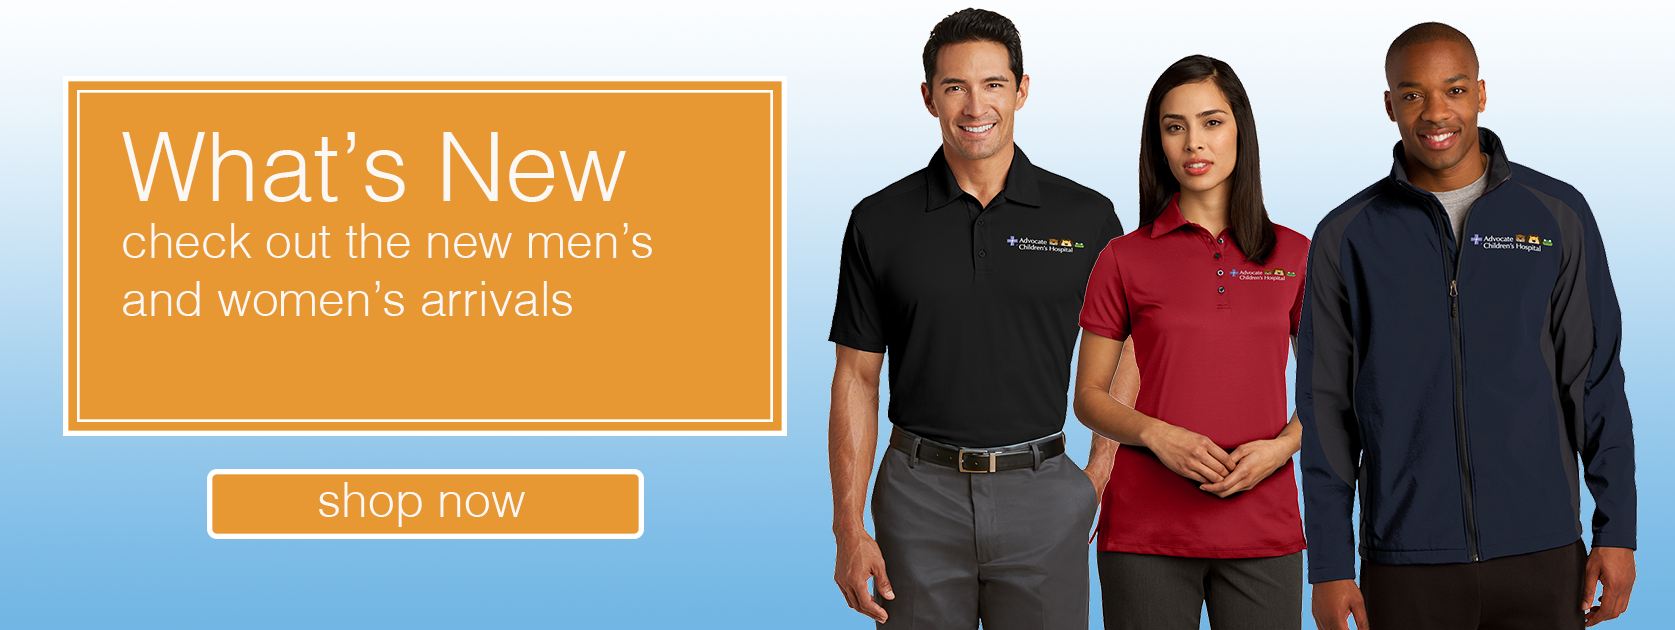 Whats New - check out the new mens and womens arrivals